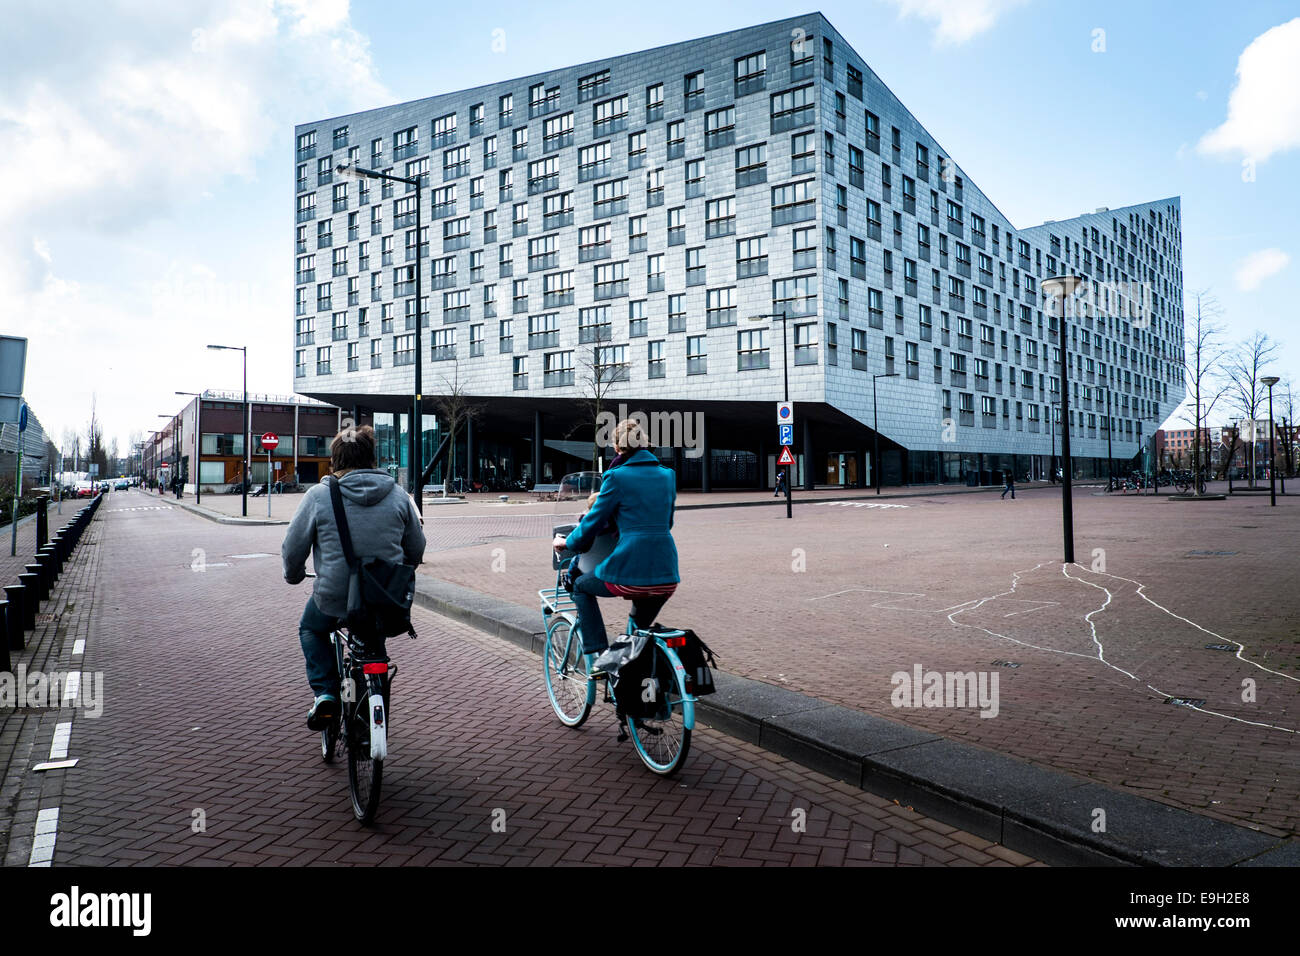 The Whale building, Sporenburg Eiland, Eastern Docklands, Amsterdam, province of North Holland, The Netherlands - Stock Image